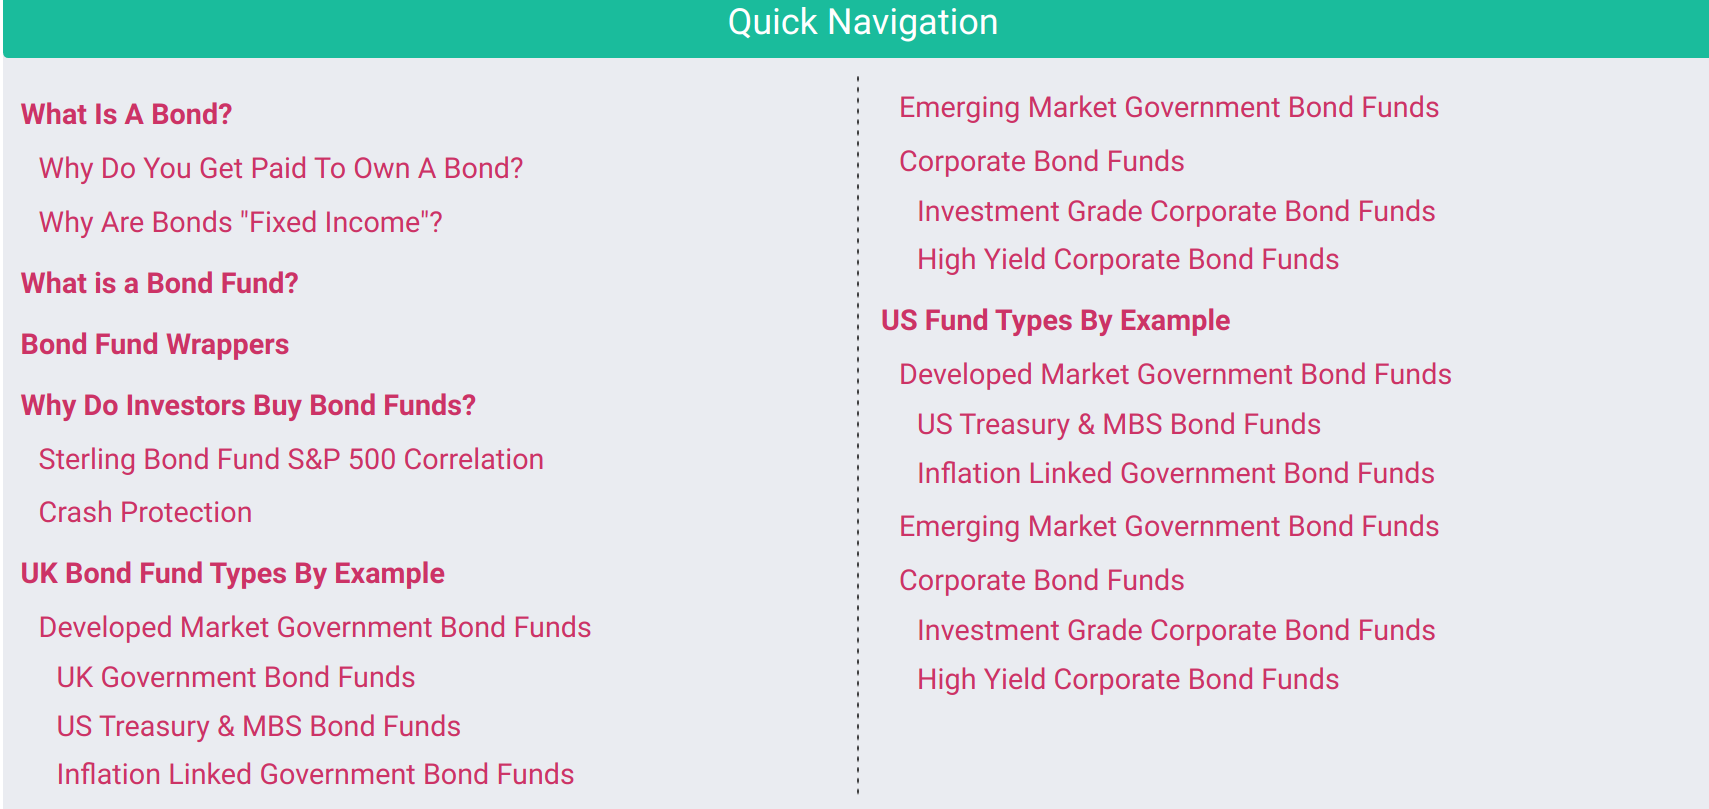 Picture of contents of bond fund course